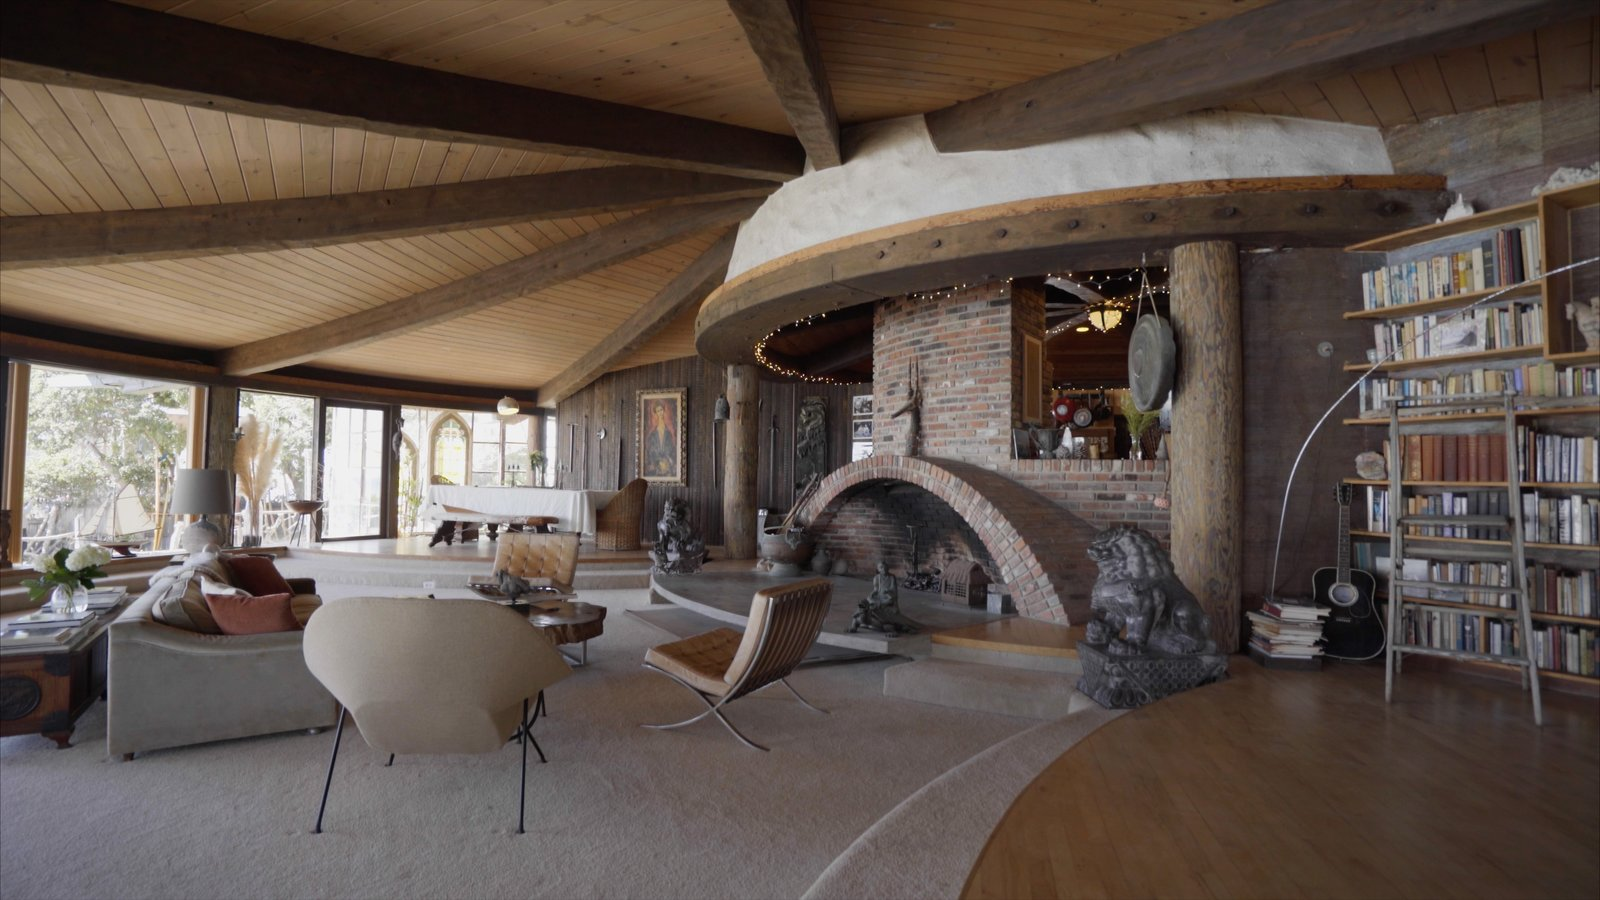 Living Room, Medium Hardwood Floor, and Wood Burning Fireplace #harrygesner #sandcastle #iconichouses  Video still courtesy of Jamie Leilani Pelayo  Photo 2 of 10 in 10 Modern Iconic Masterpieces